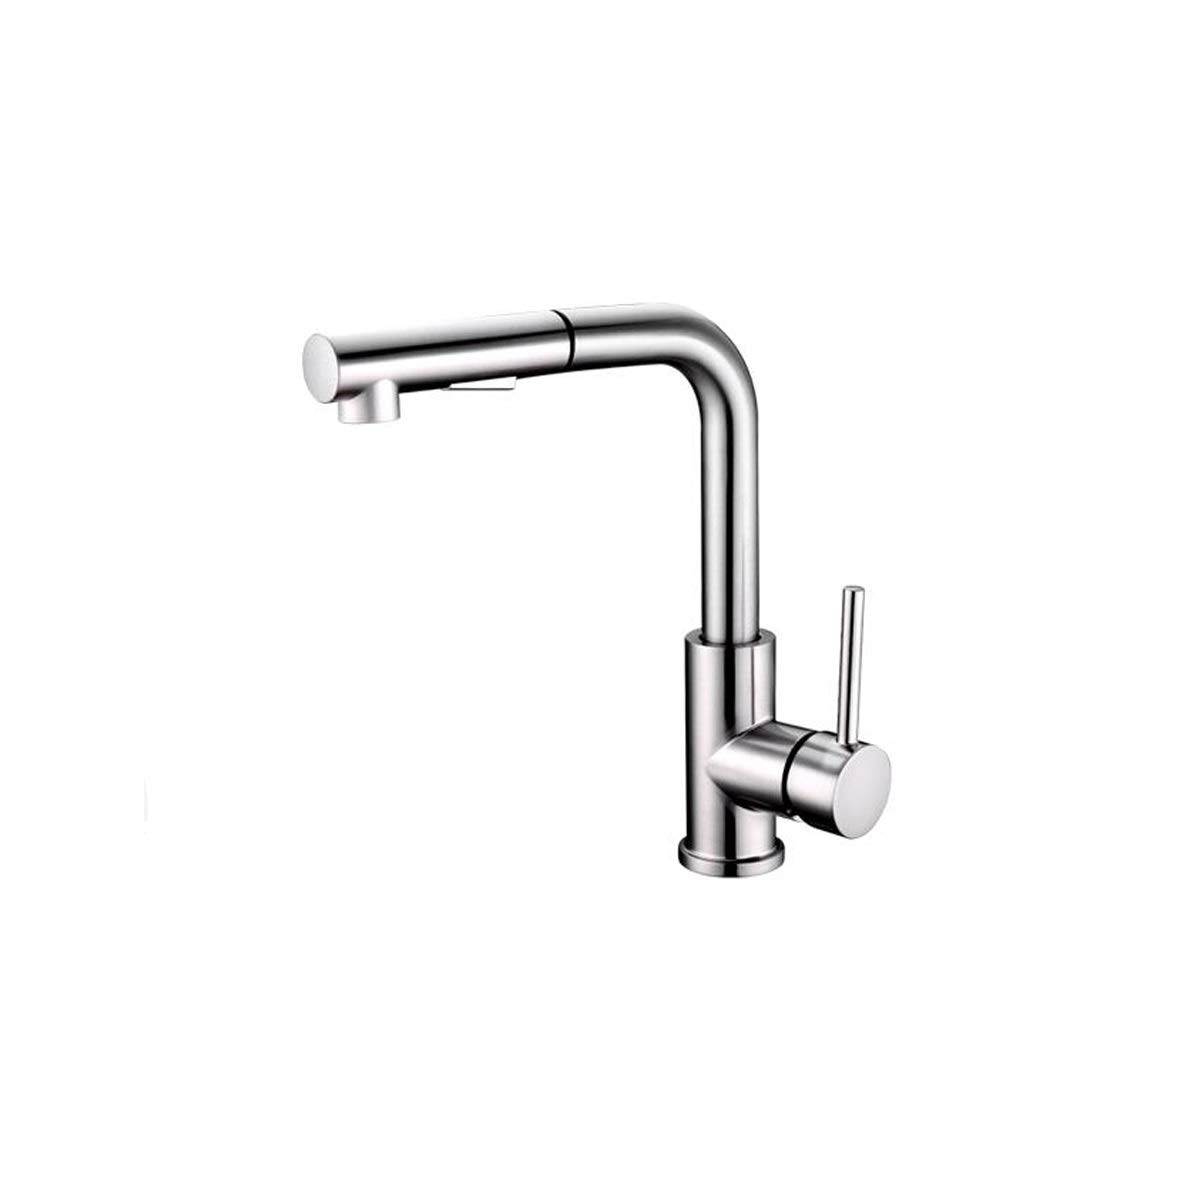 QIANZICAIDIANJIA Faucet, Single Handle Stainless Steel Kitchen Faucet With 3-Function Pull Down Sprayer, High Arc Pull Out Spray Head Kitchen Sink Faucet stainless steel faucet by QIANZICAIDIANJIA